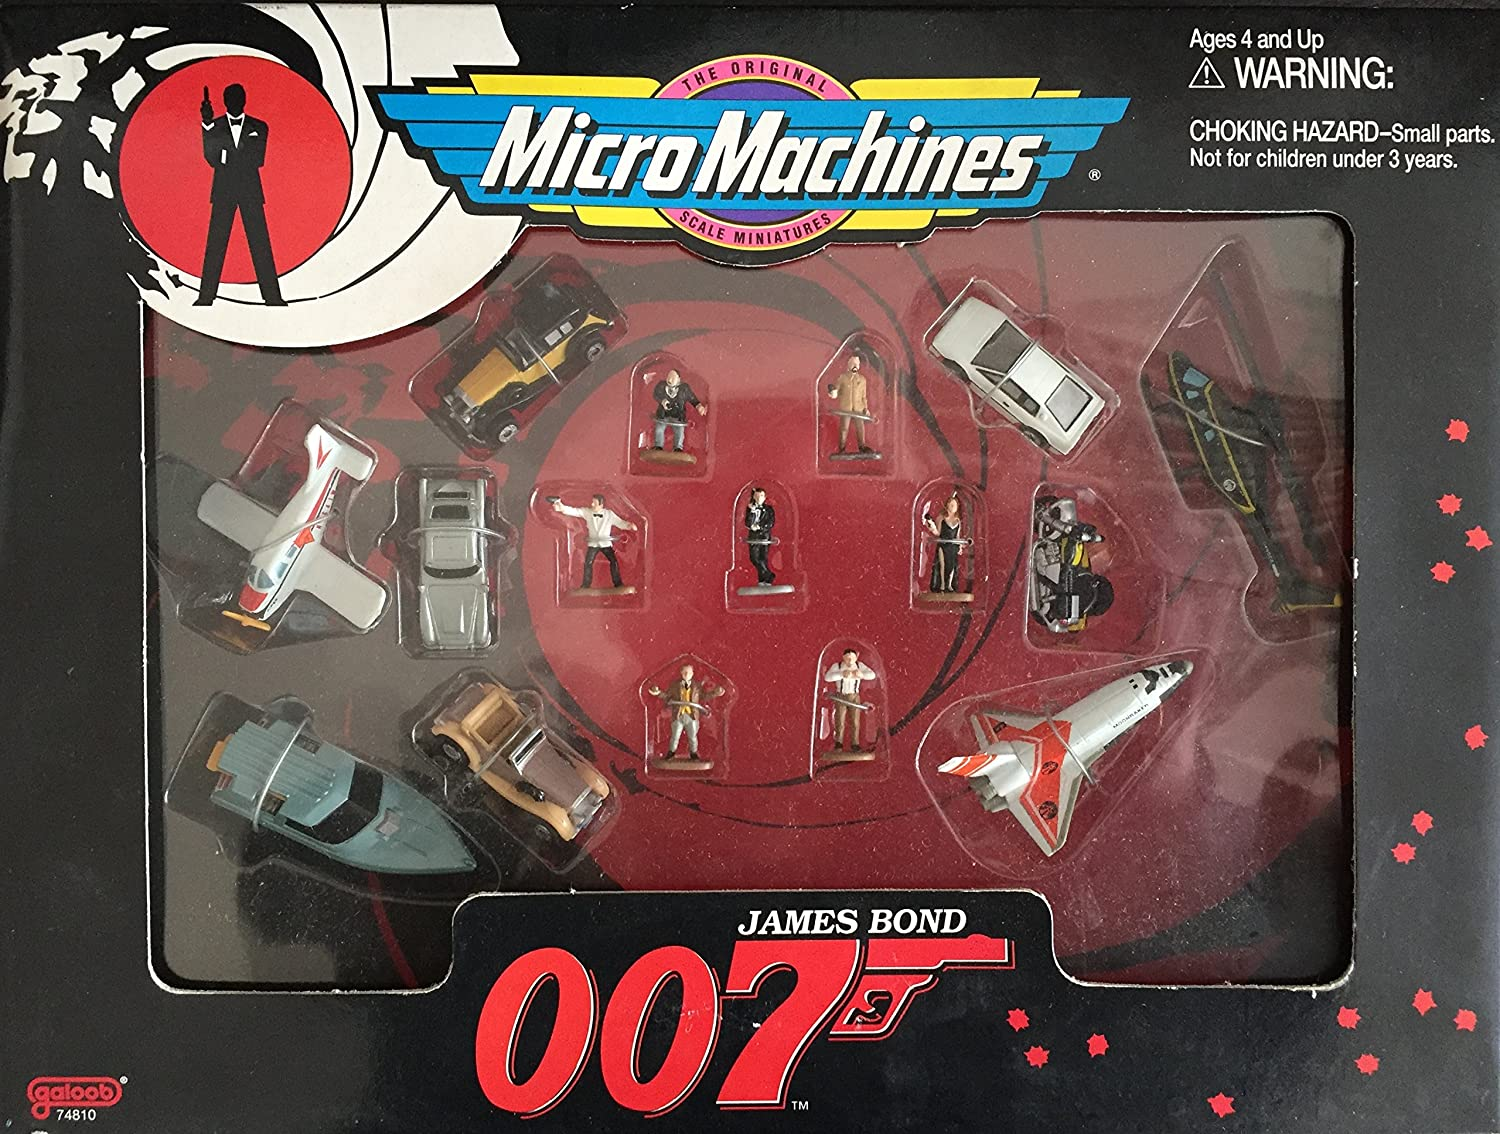 James Bond 007 Micro Machines Collector Set